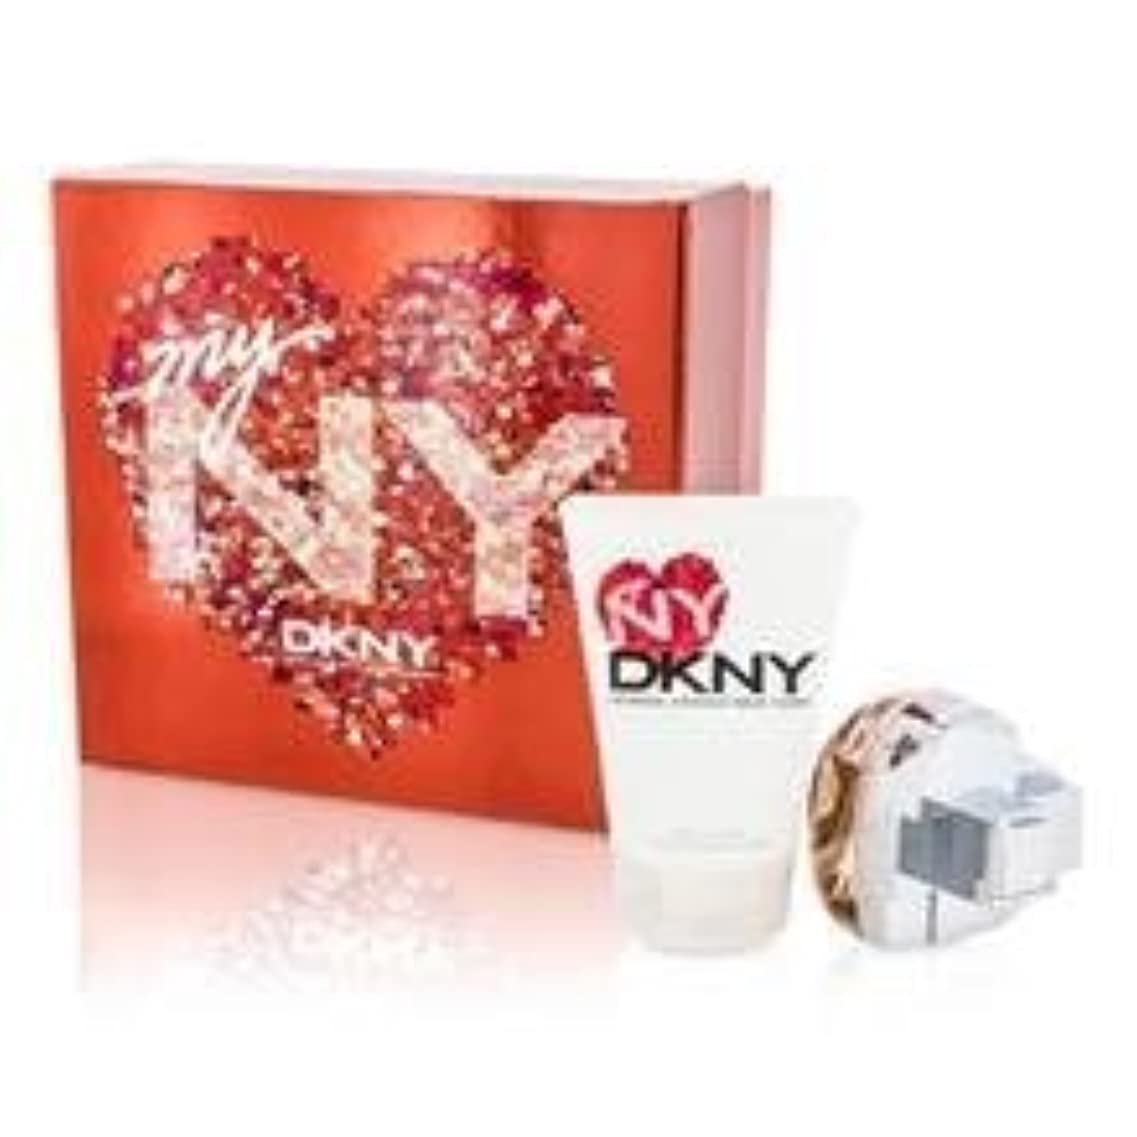 ハプニング公爵夫人展示会DKNY My NY The Heart Of The City Coffret: Eau De Parfum Spray 50ml/1.7oz + Body Lotion 100ml/3.4oz 2pcs並行輸入品